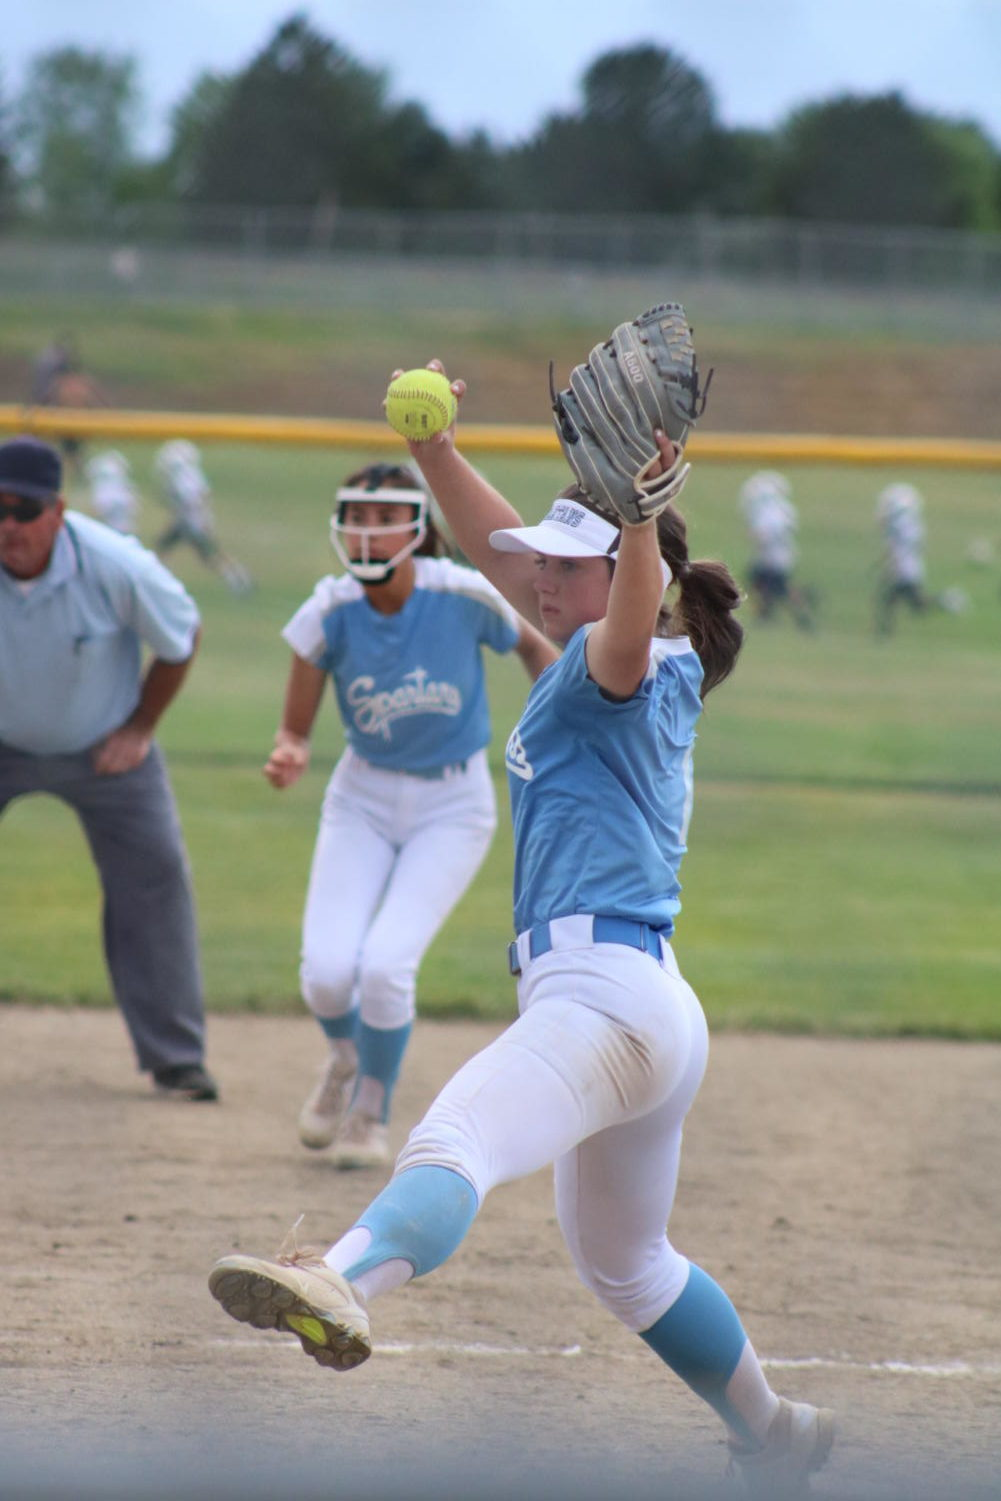 Kyra Grauberger delivers a pitch on Thursday at Northridge High School